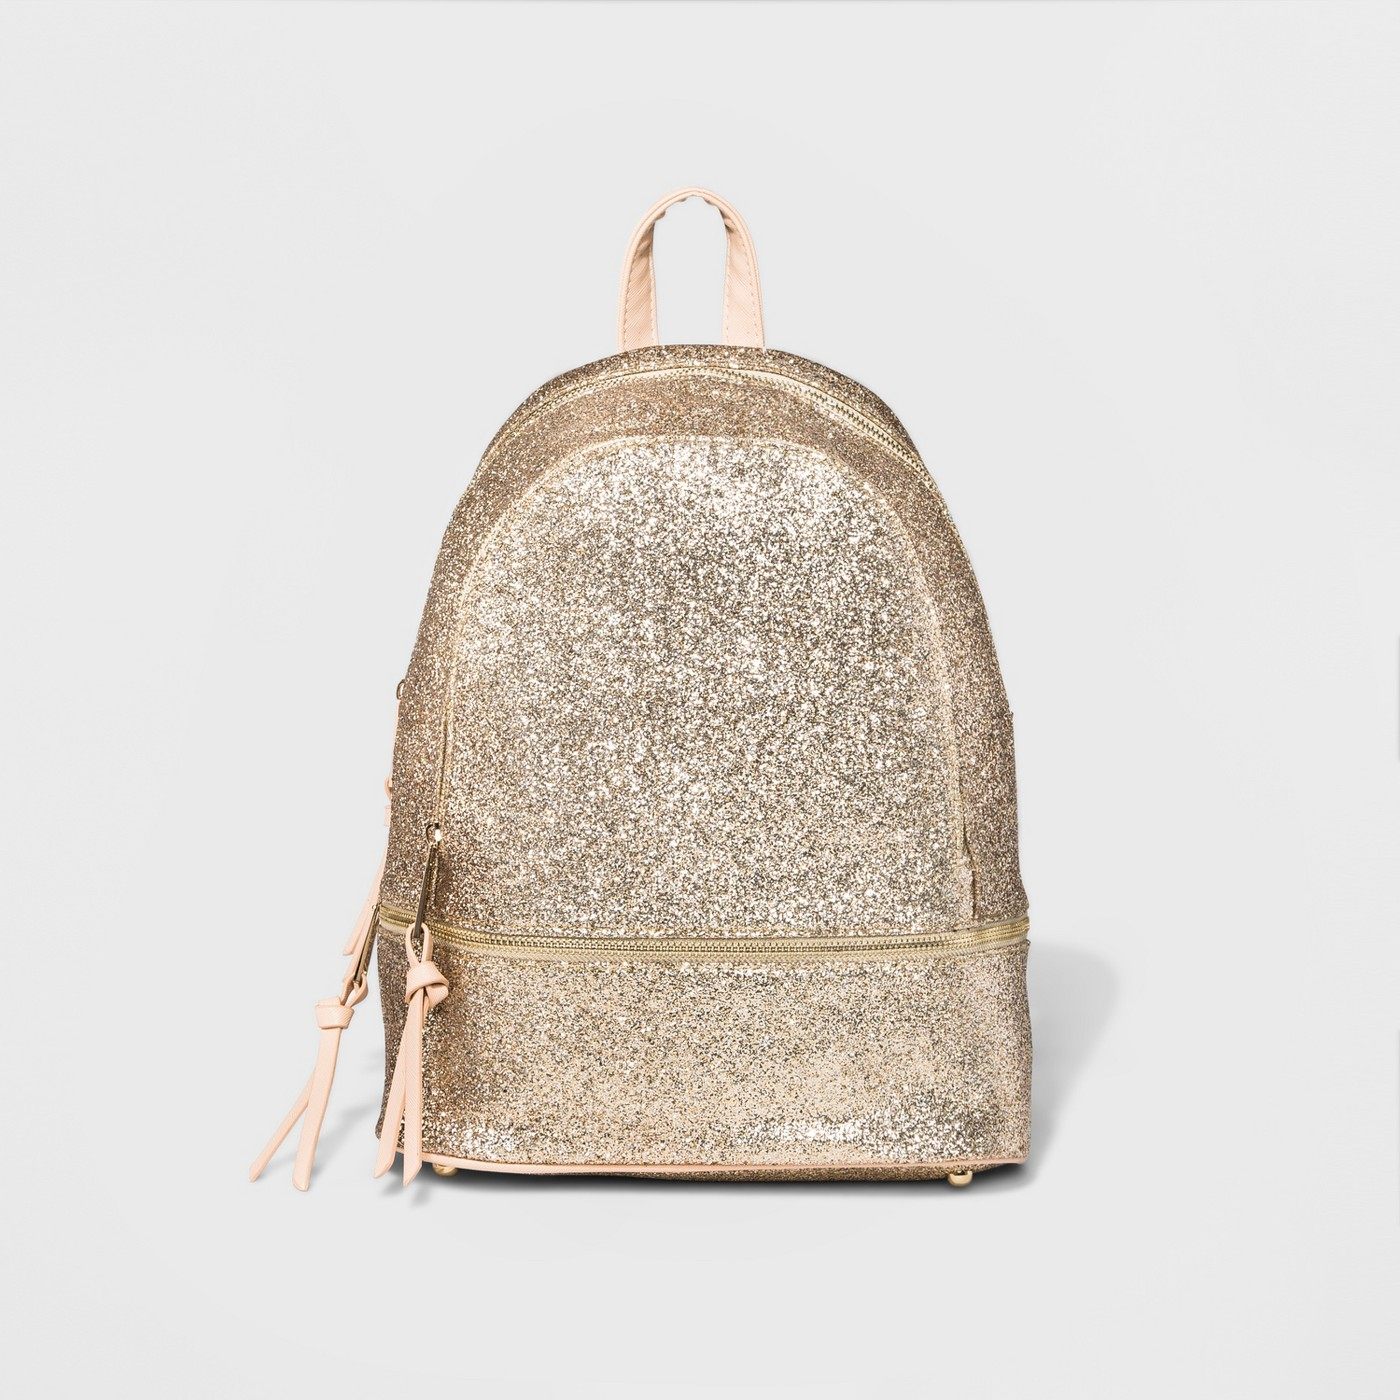 Under One Sky Glitter Mini Backpack - image 1 of 4